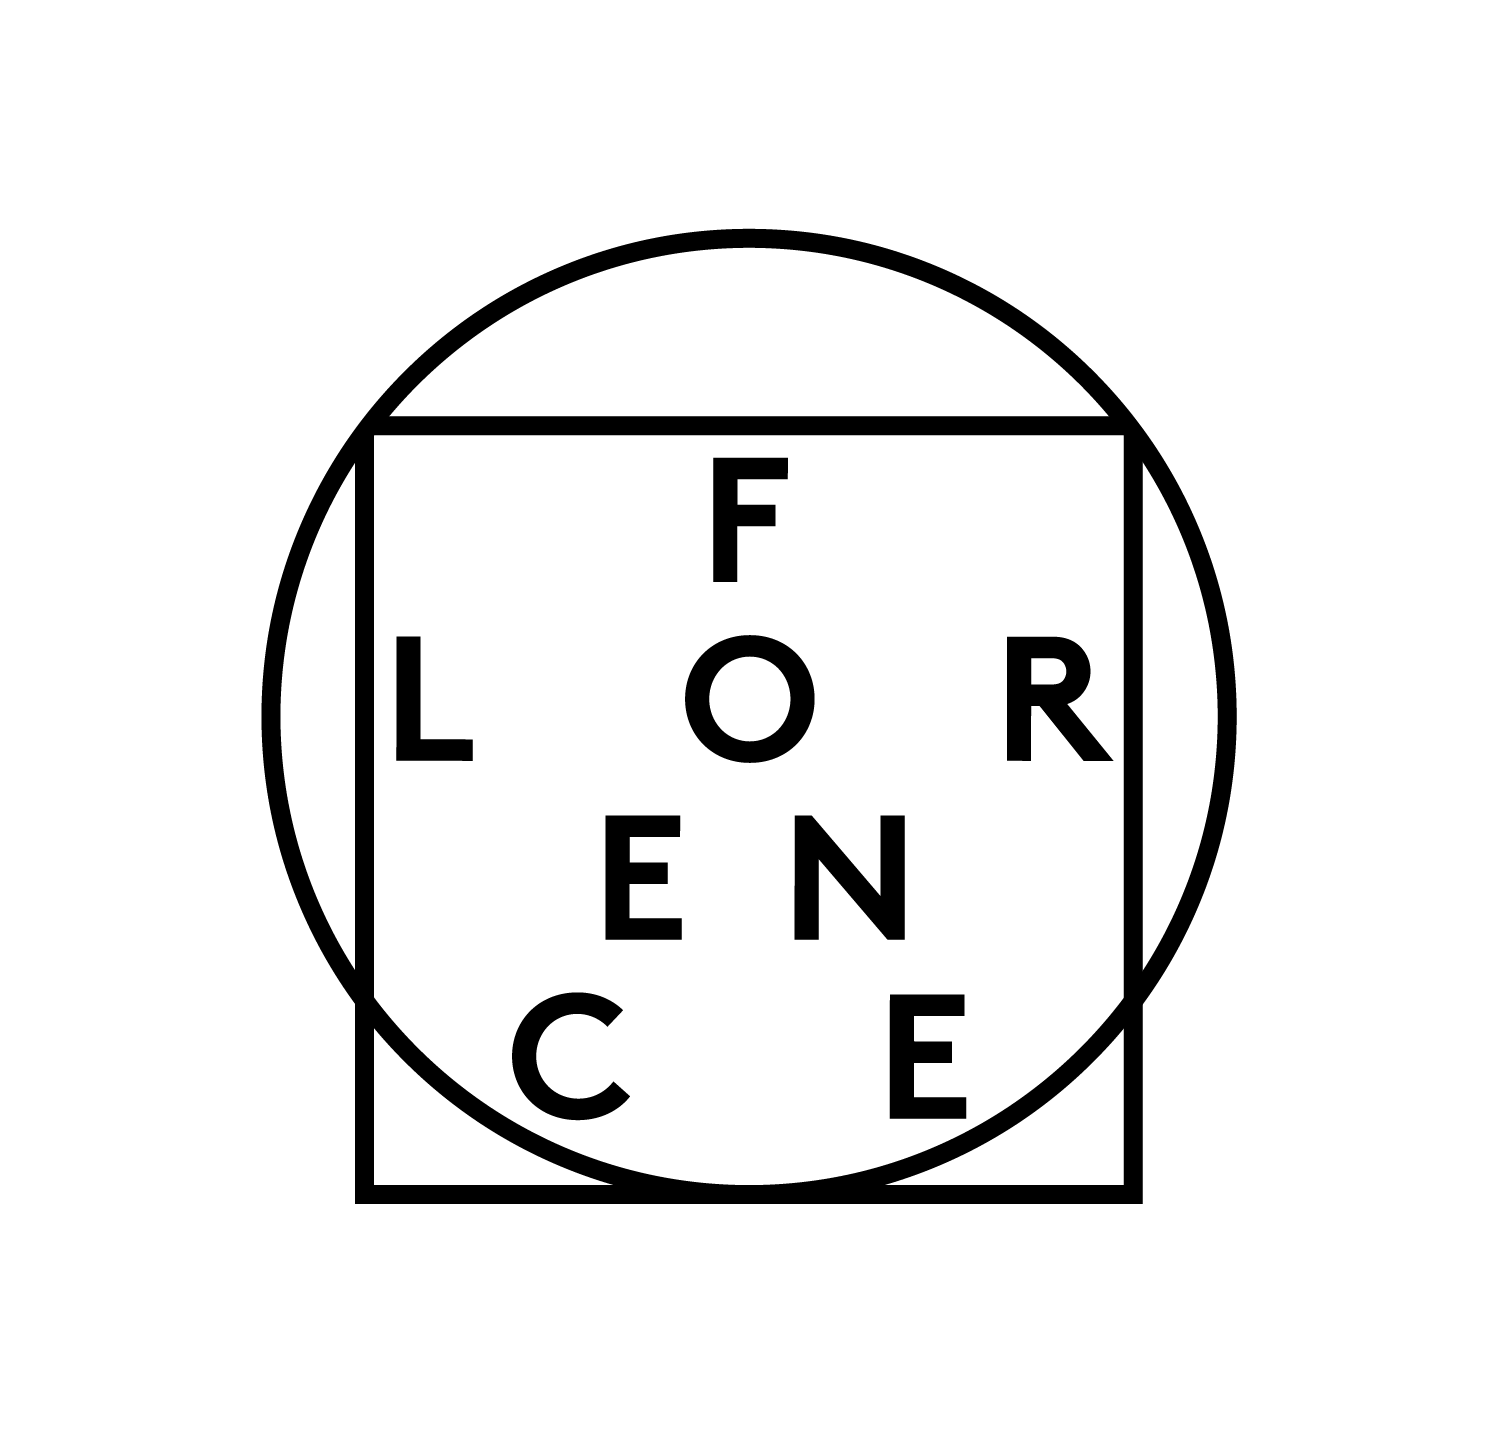 Florence_logo_Final_design-03.png